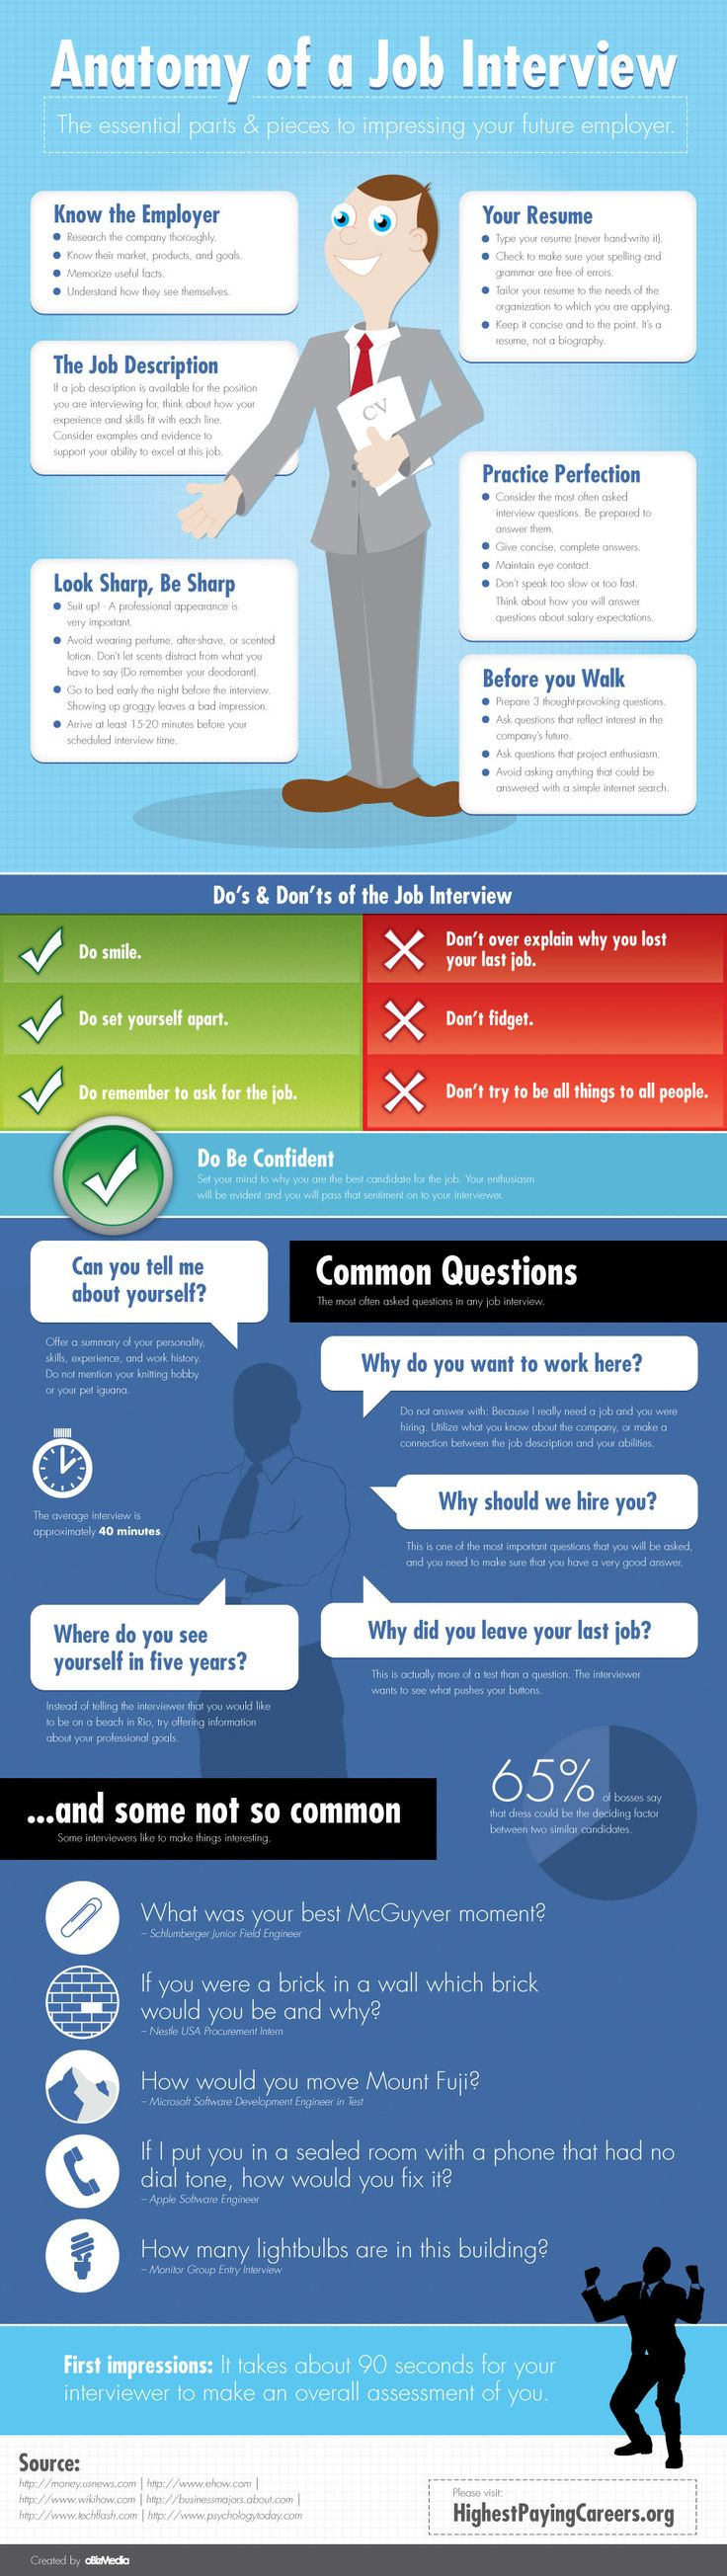 An interesting look at the job interview process